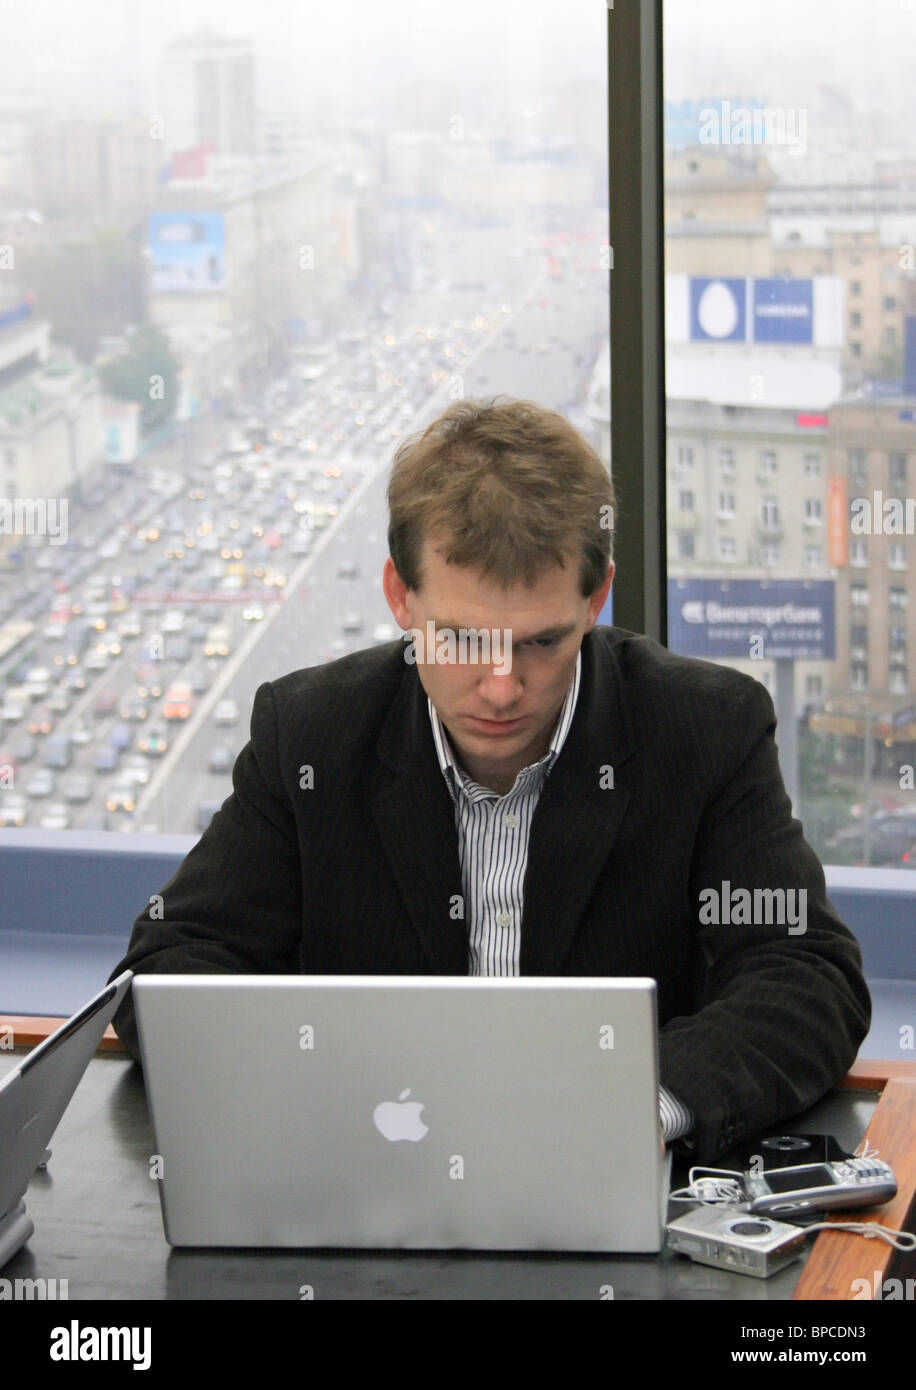 Russia October 20 Livejournal Founder Brad Fitzpatrick Stock